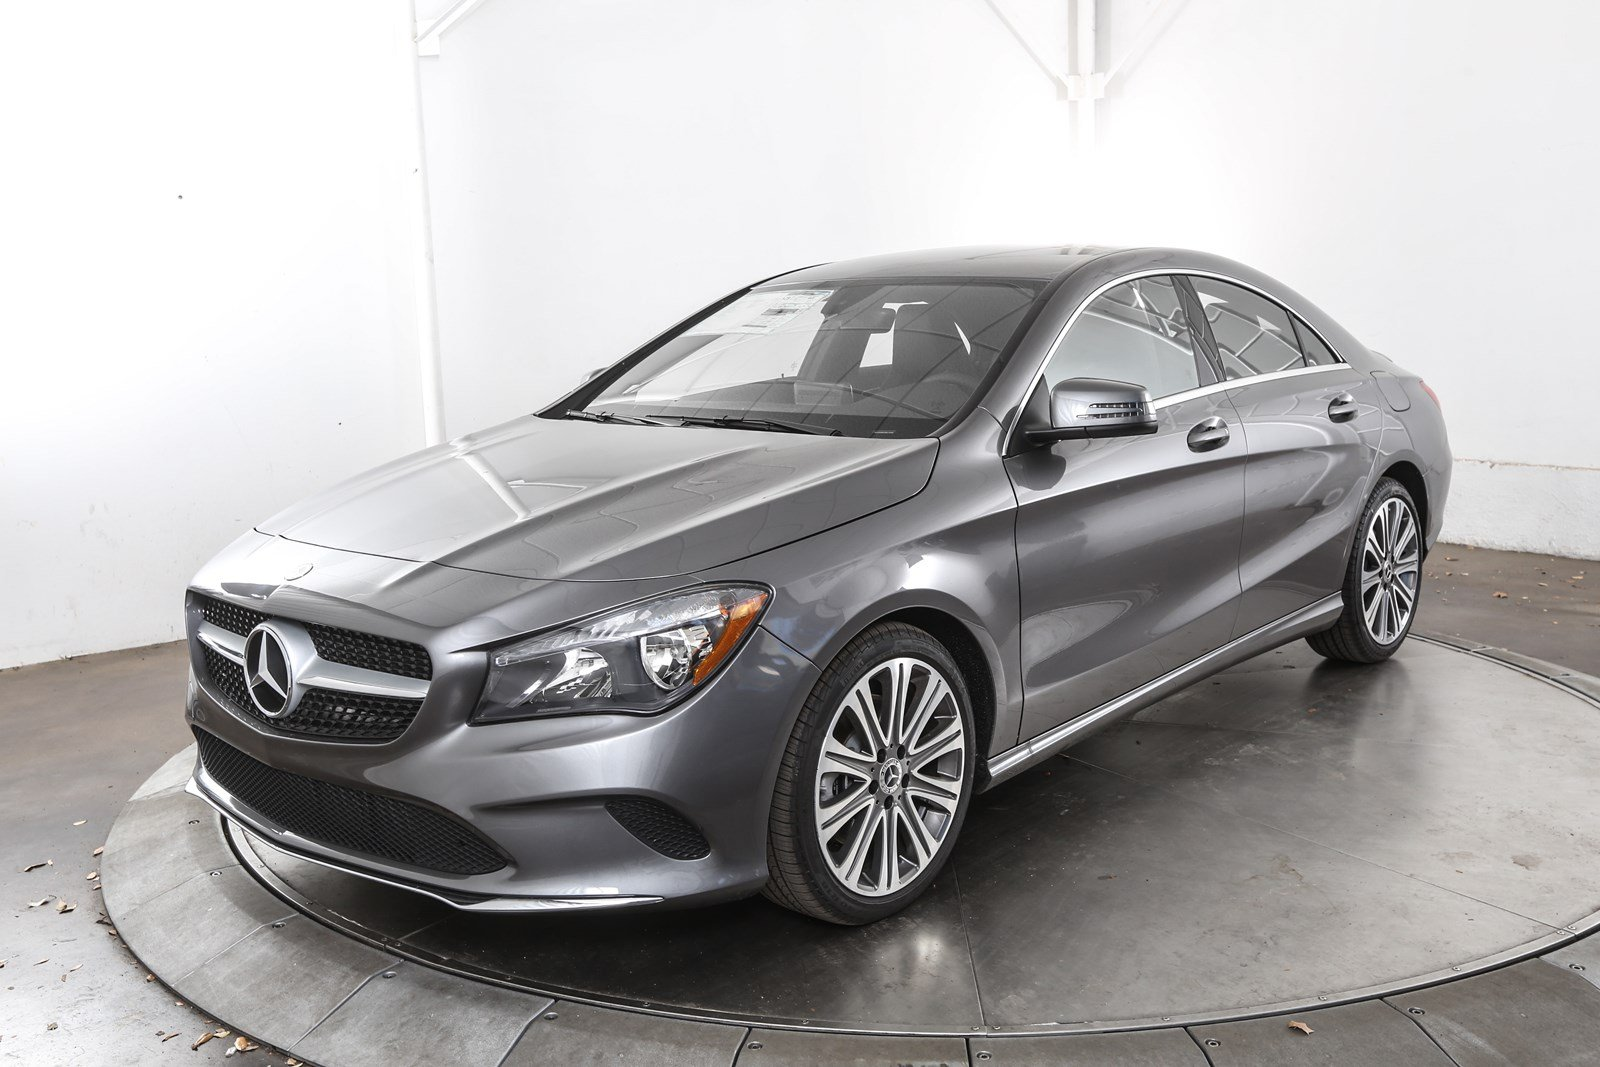 New 2018 mercedes benz cla cla 250 coupe in austin m58152 for Mercedes benz cla 250 msrp